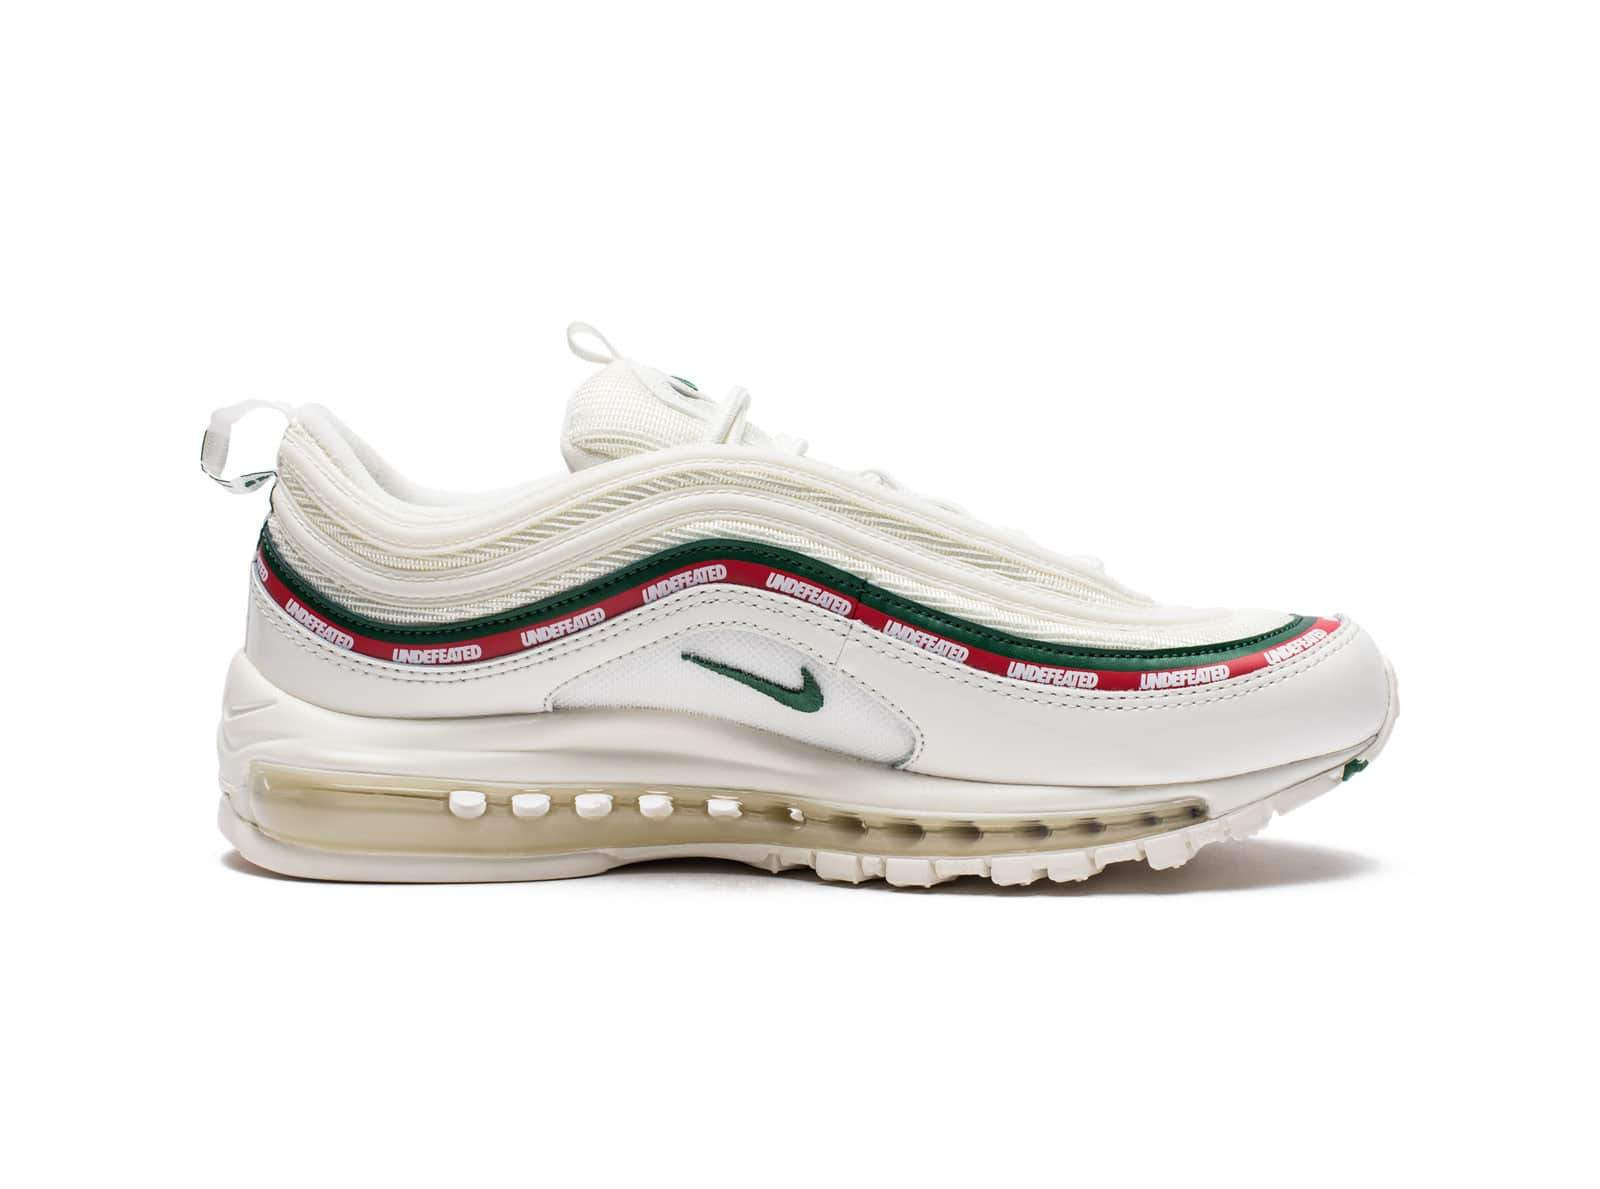 UNDEFEATED X NIKE AIR MAX 97 OG - WHITE